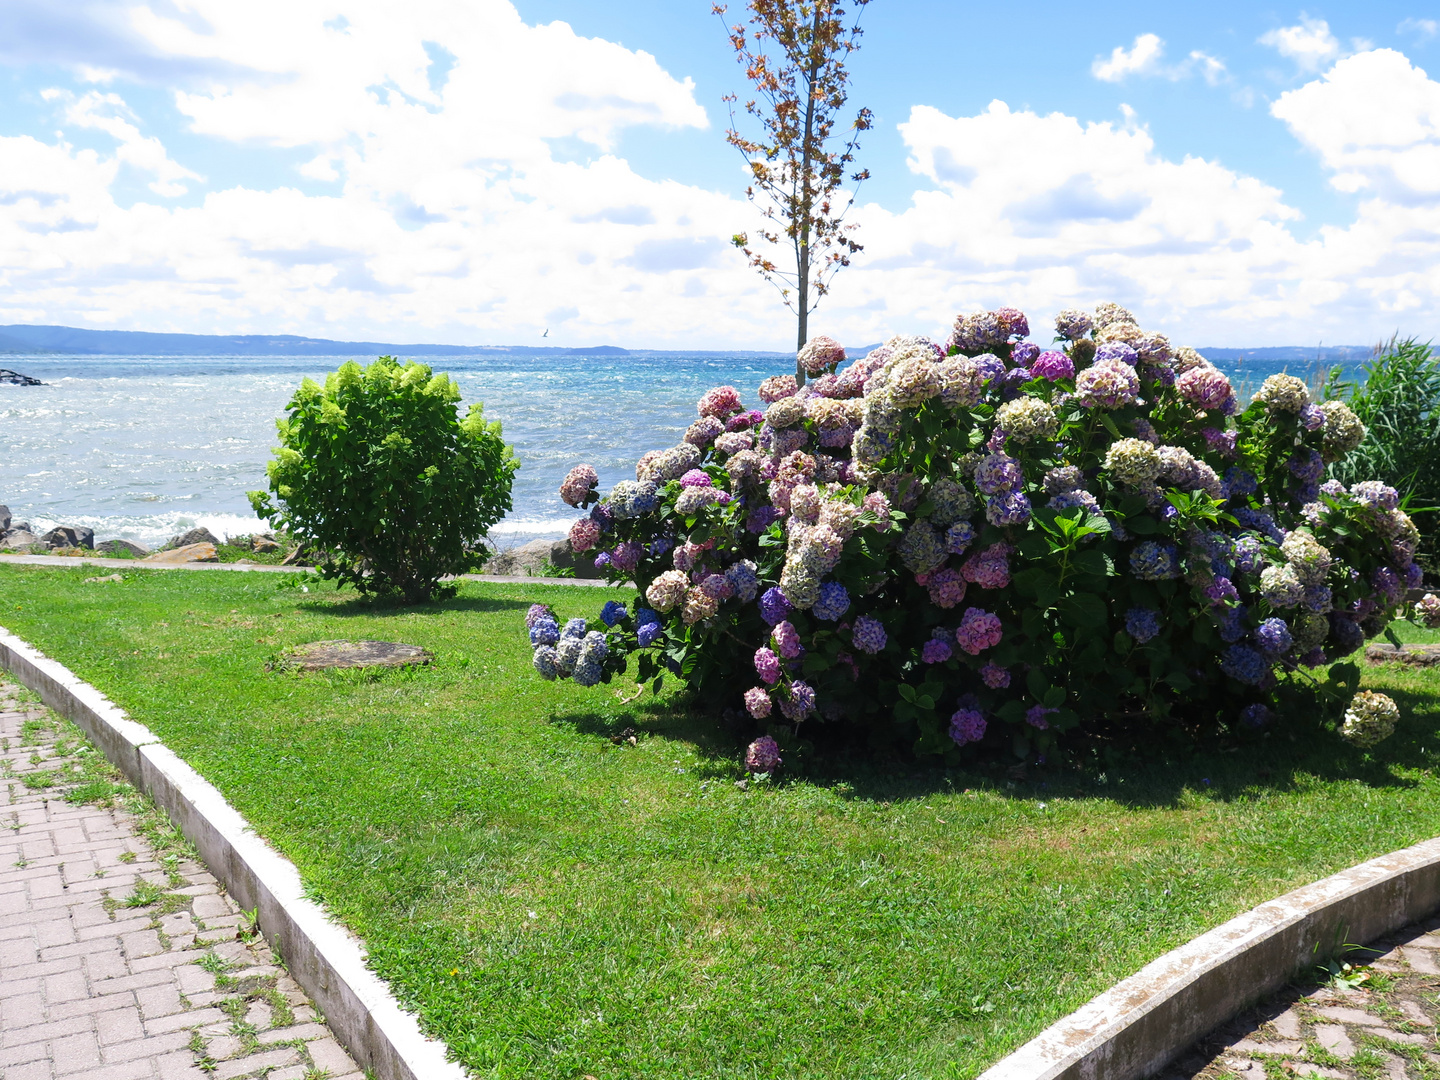 flowers at Bolsena lake